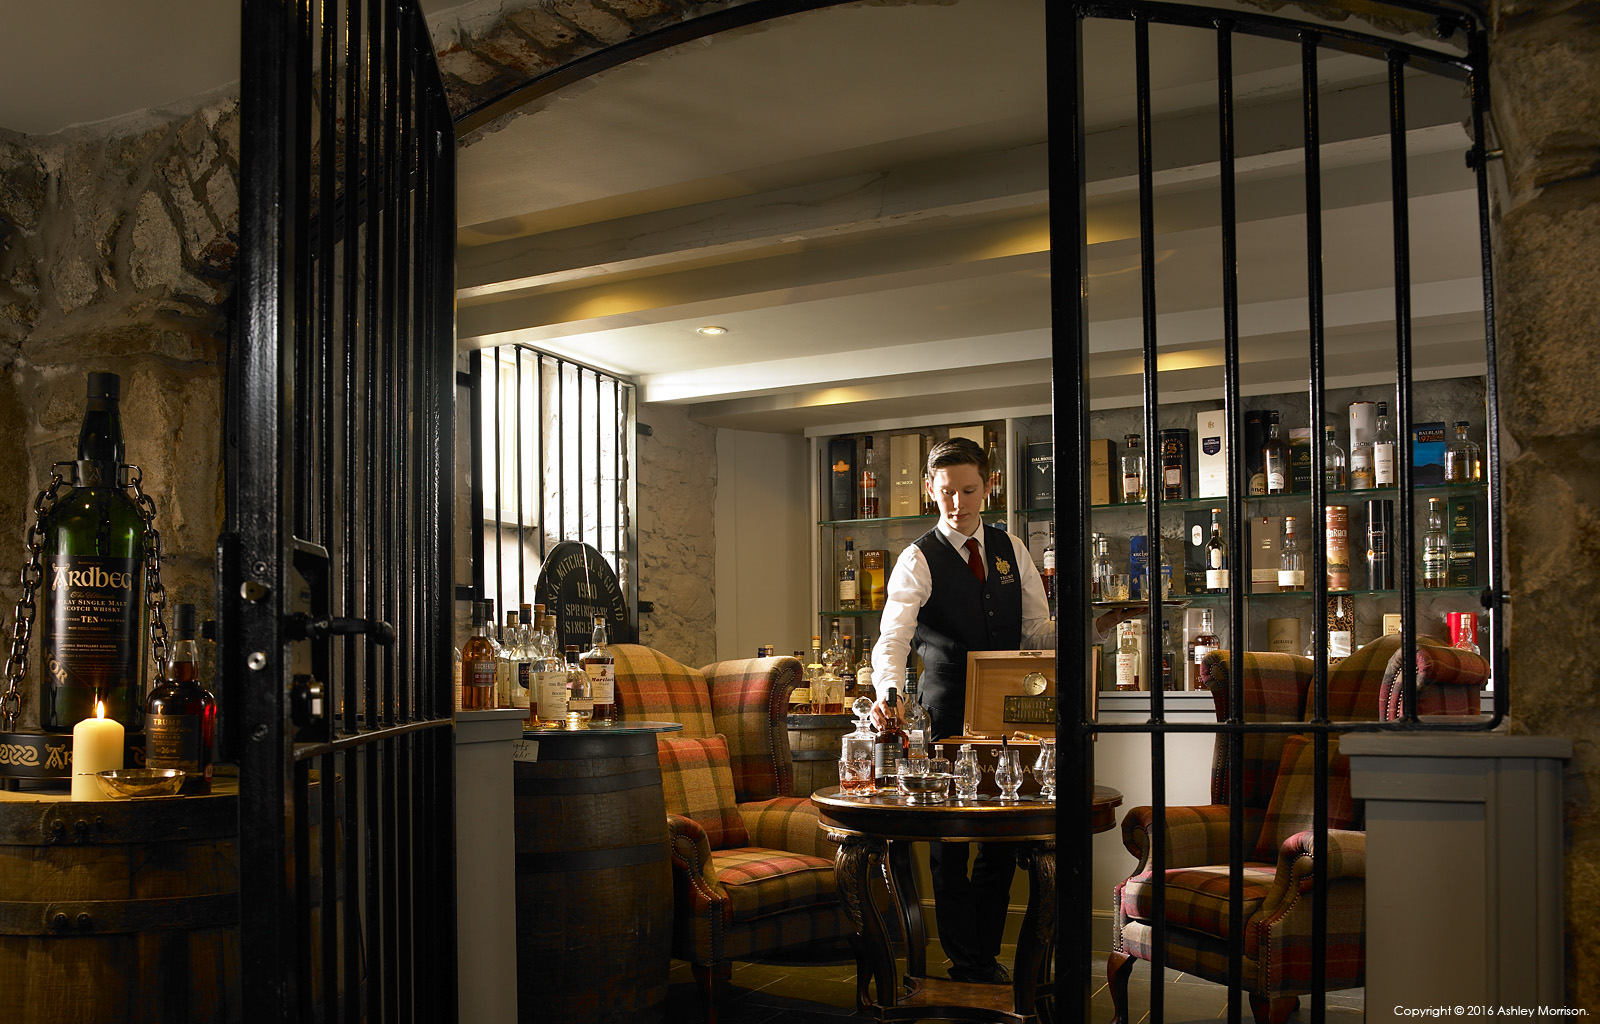 The whisky tastings room in the basement at the Trump International Golf Links Hotel near Aberdeen in Scotland.